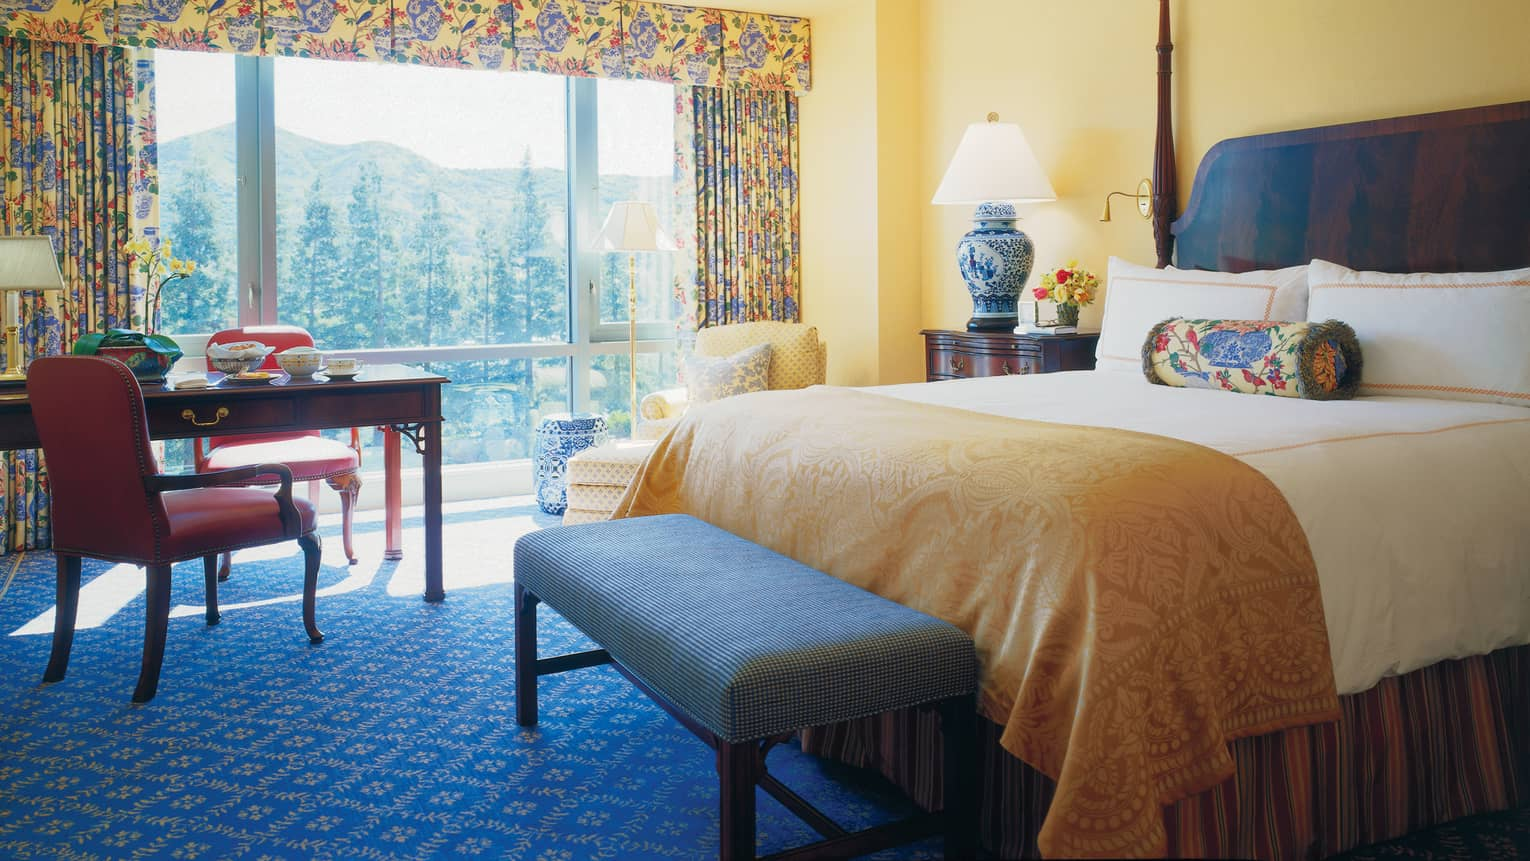 Deluxe Room hotel bed with gold blanket, bench, desk, windows with bright curtains